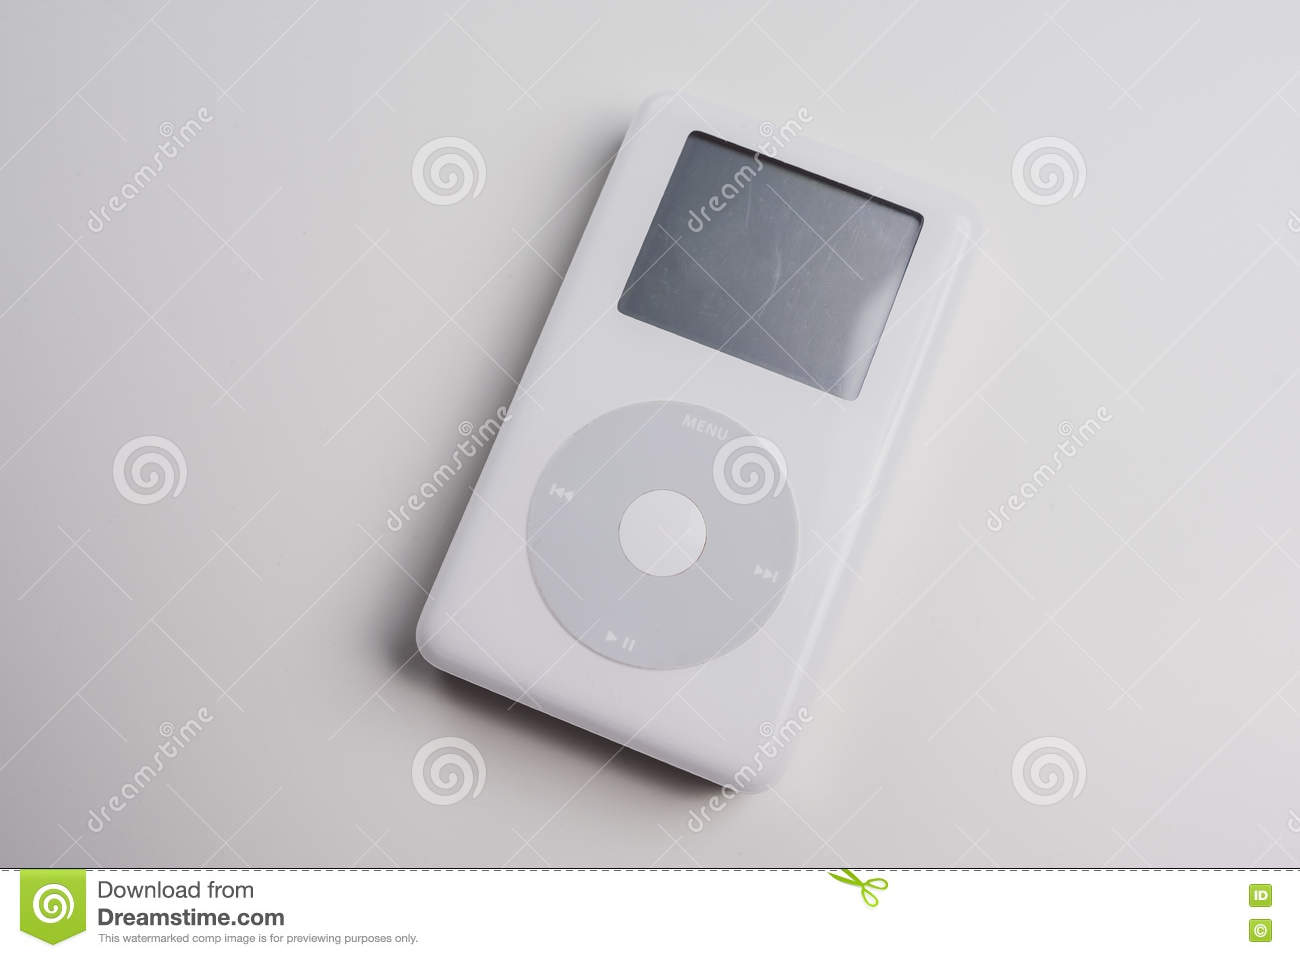 Apple iPod classic (4th Generation). Download preview